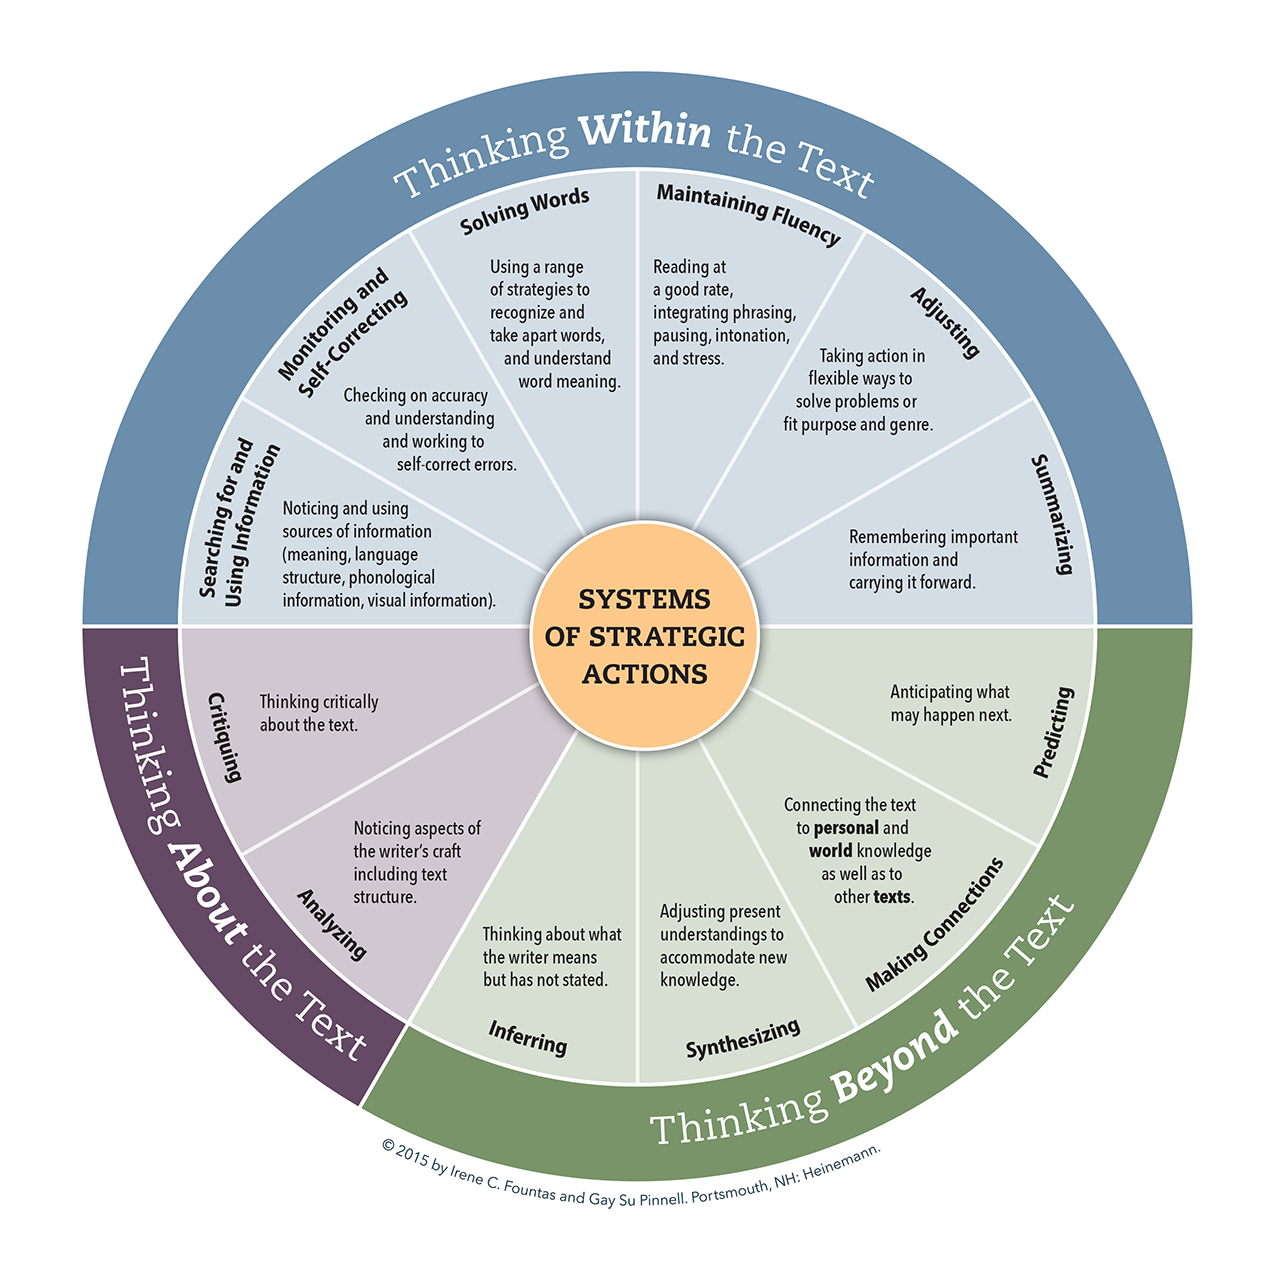 FP_FPL_Chart_Systems-of-Strategic-Actions-Wheel_Feb092016-150res